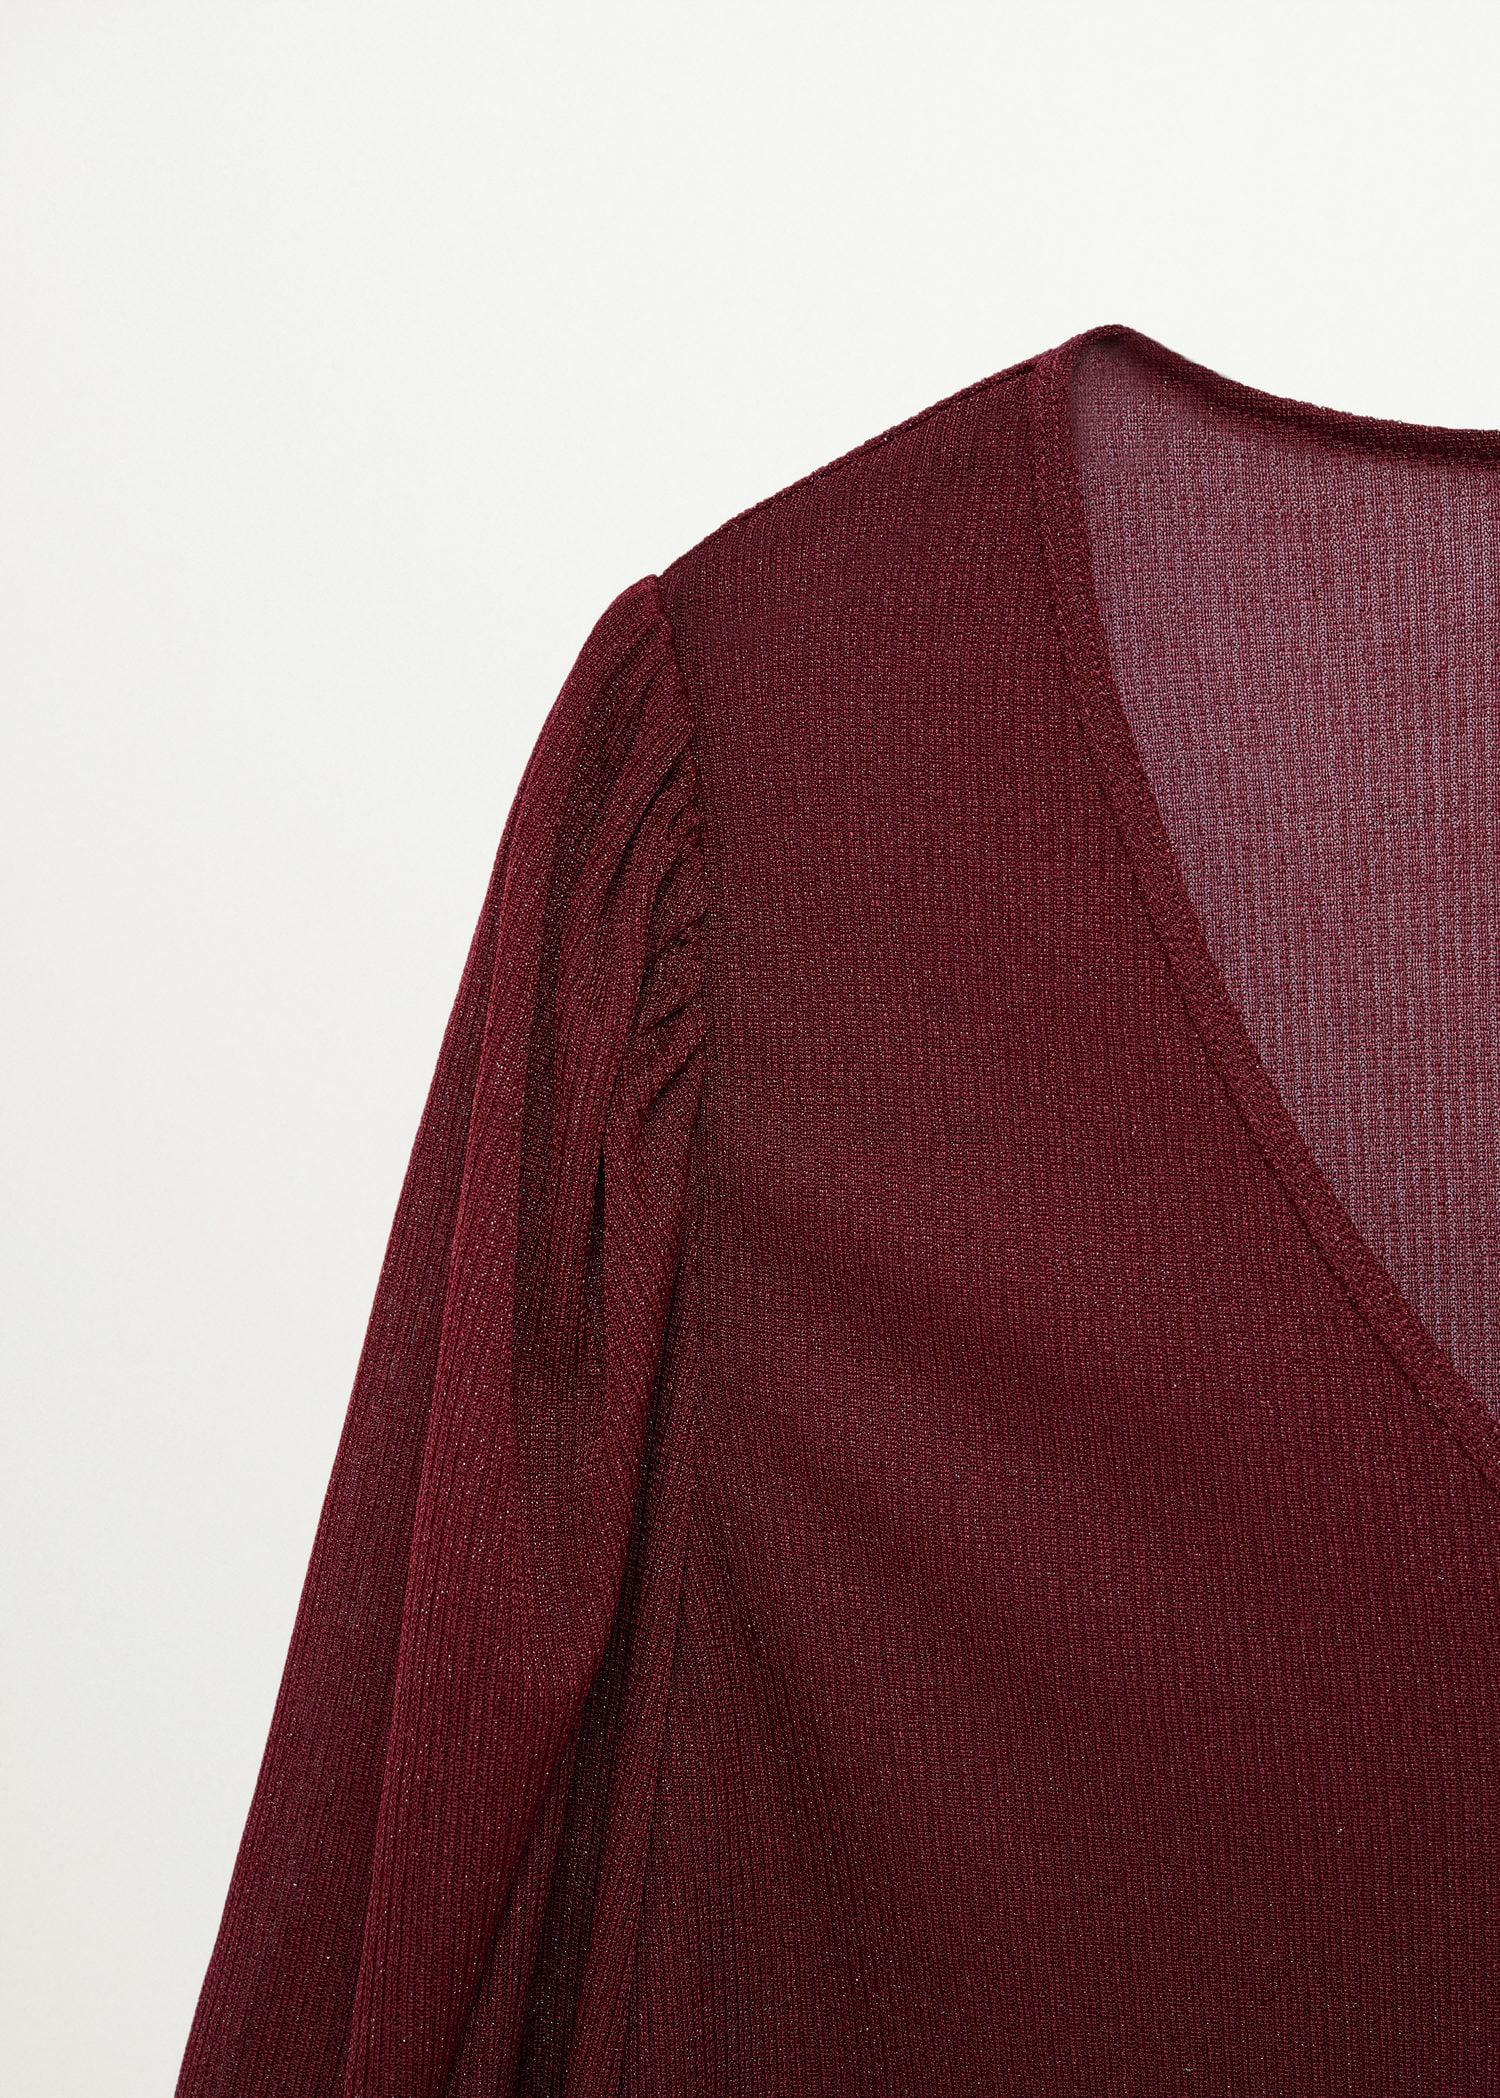 T-shirt with puffed sleeves 5